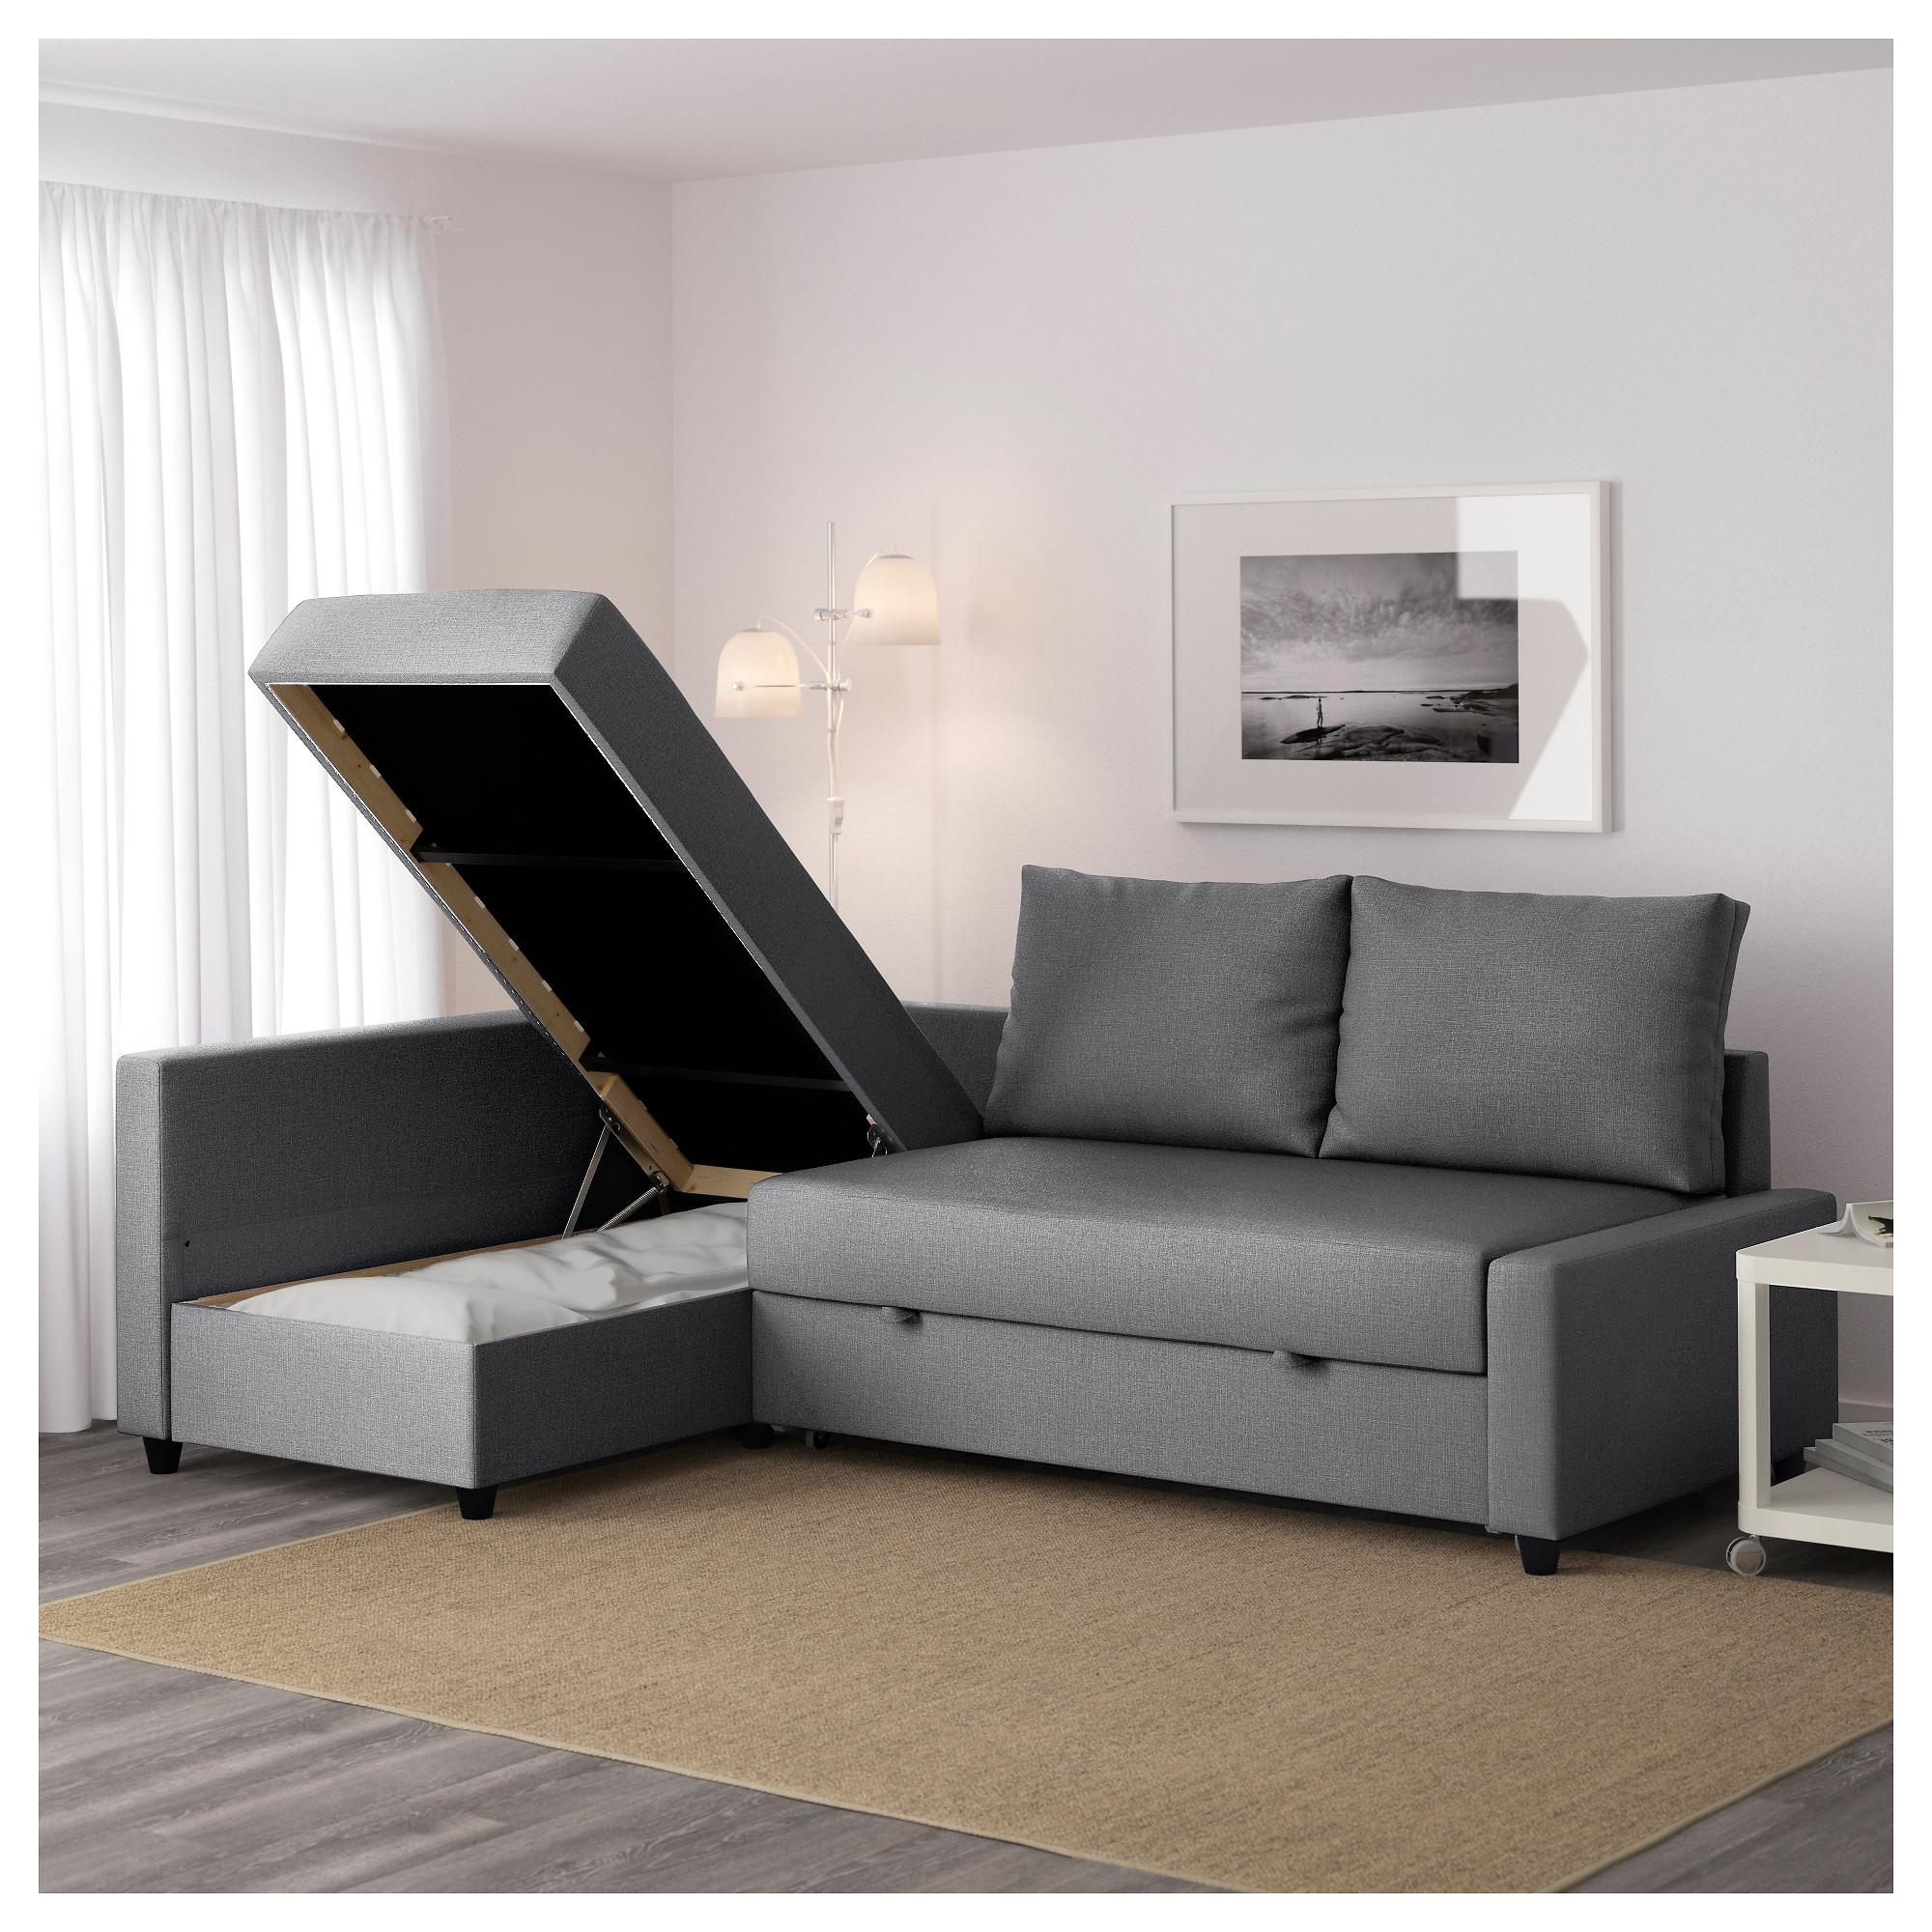 Friheten Corner Sofa Bed With Storage Skiftebo Dark Grey – Ikea With Regard To Ikea Storage Sofa Bed (Image 8 of 20)